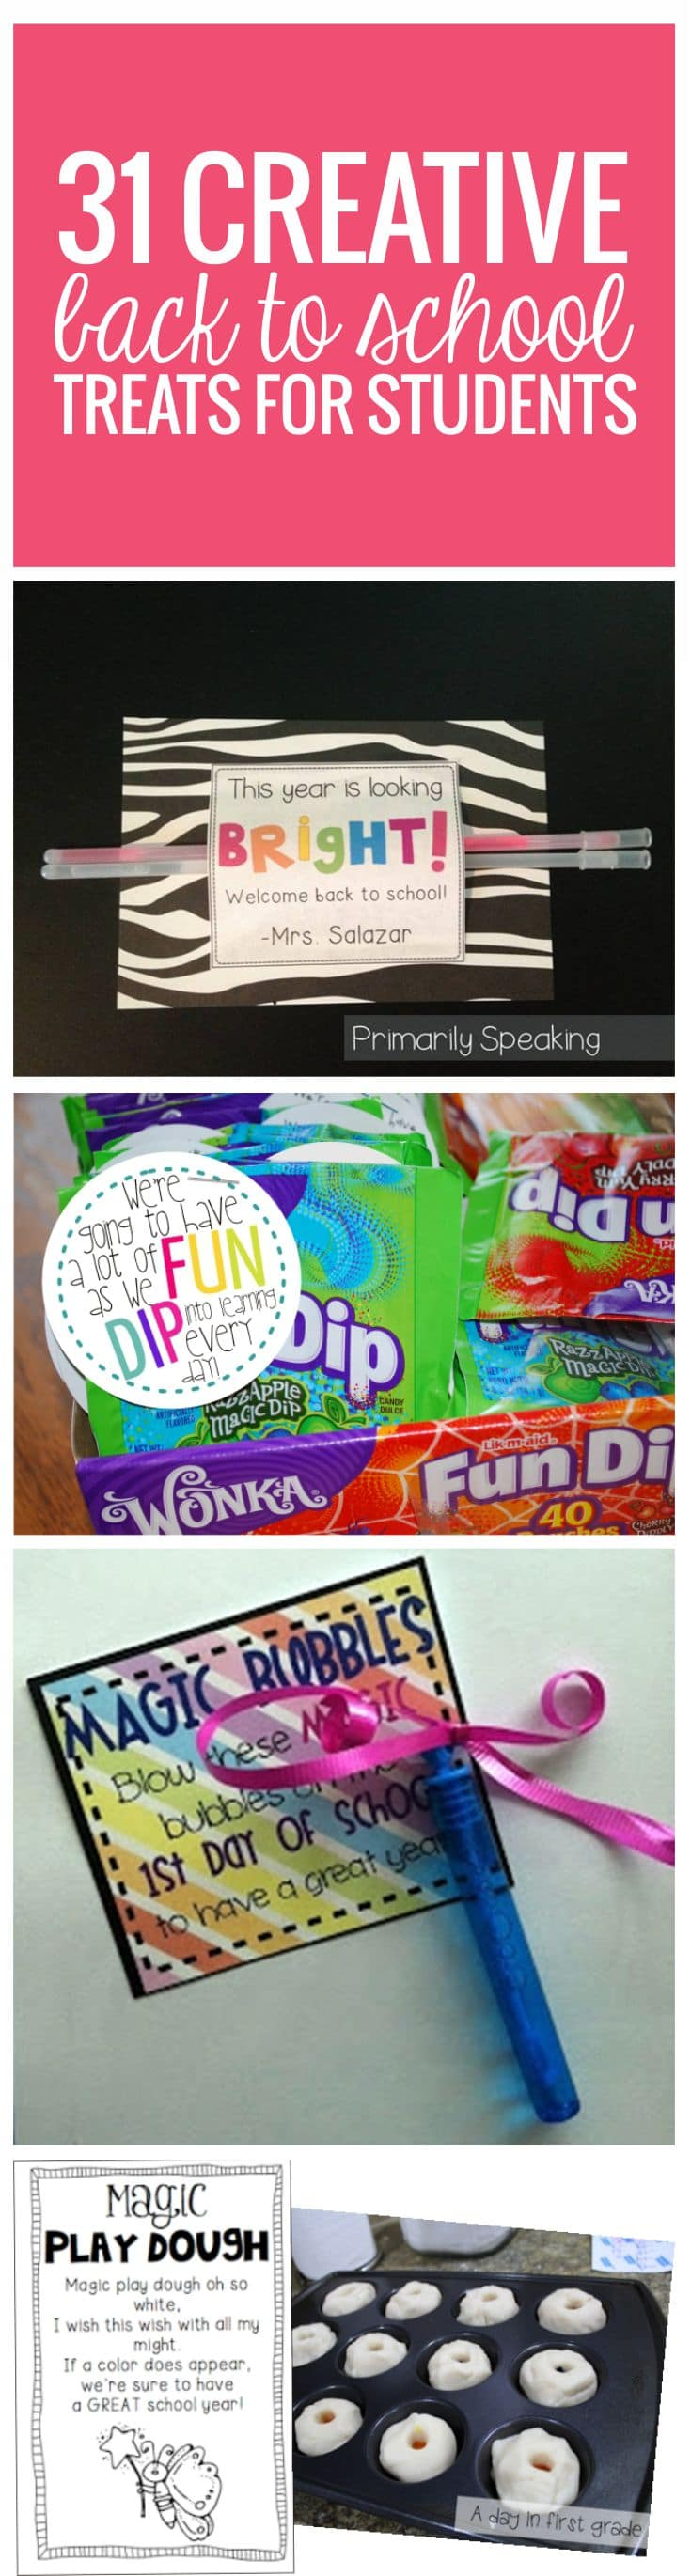 31 Creative Back to School Treats for Students - comes with free printables - love it